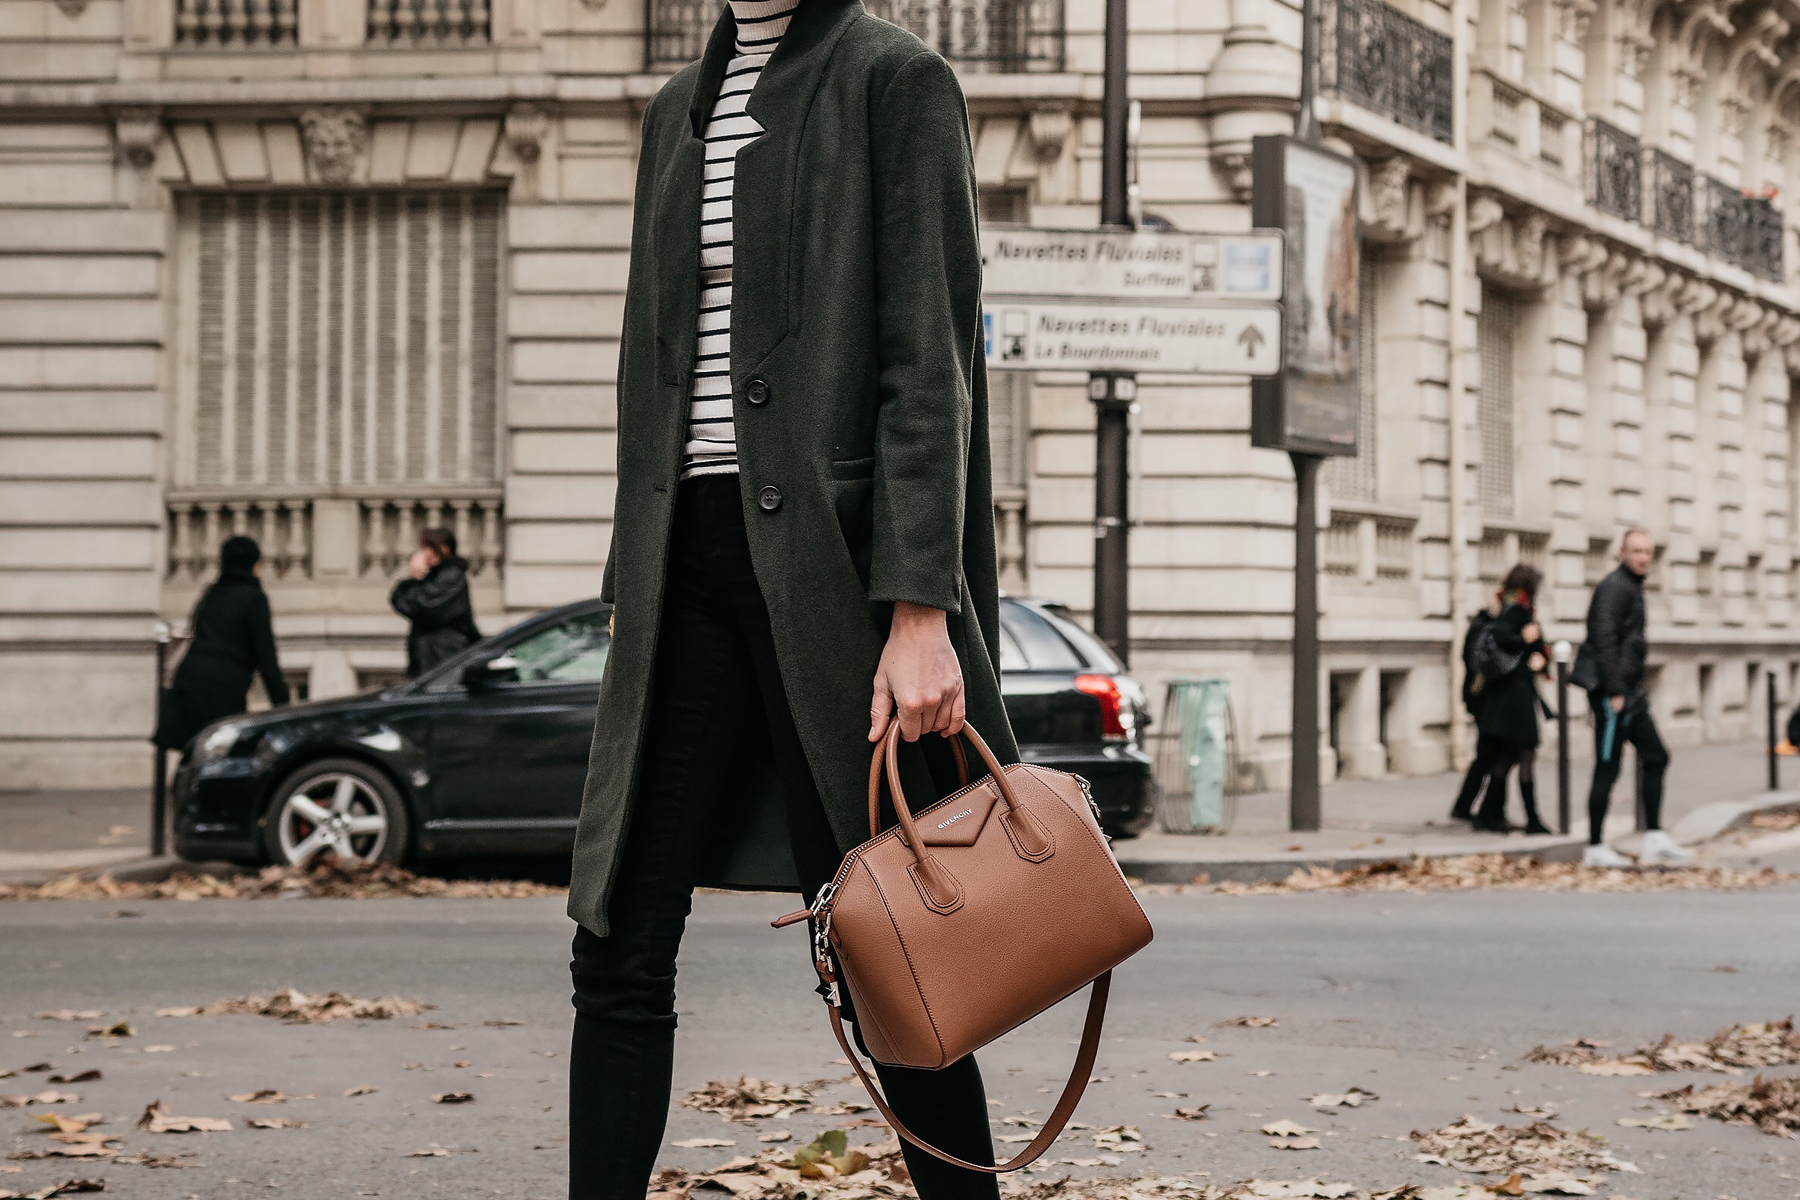 Eiffel Tower Paris France Green Wool Coat Black White Stripe Turtleneck Black Skinny Jeans Givency Antigona Cognac Satchel Fashion Jackson Dallas Blogger Fashion Blogger Street Style